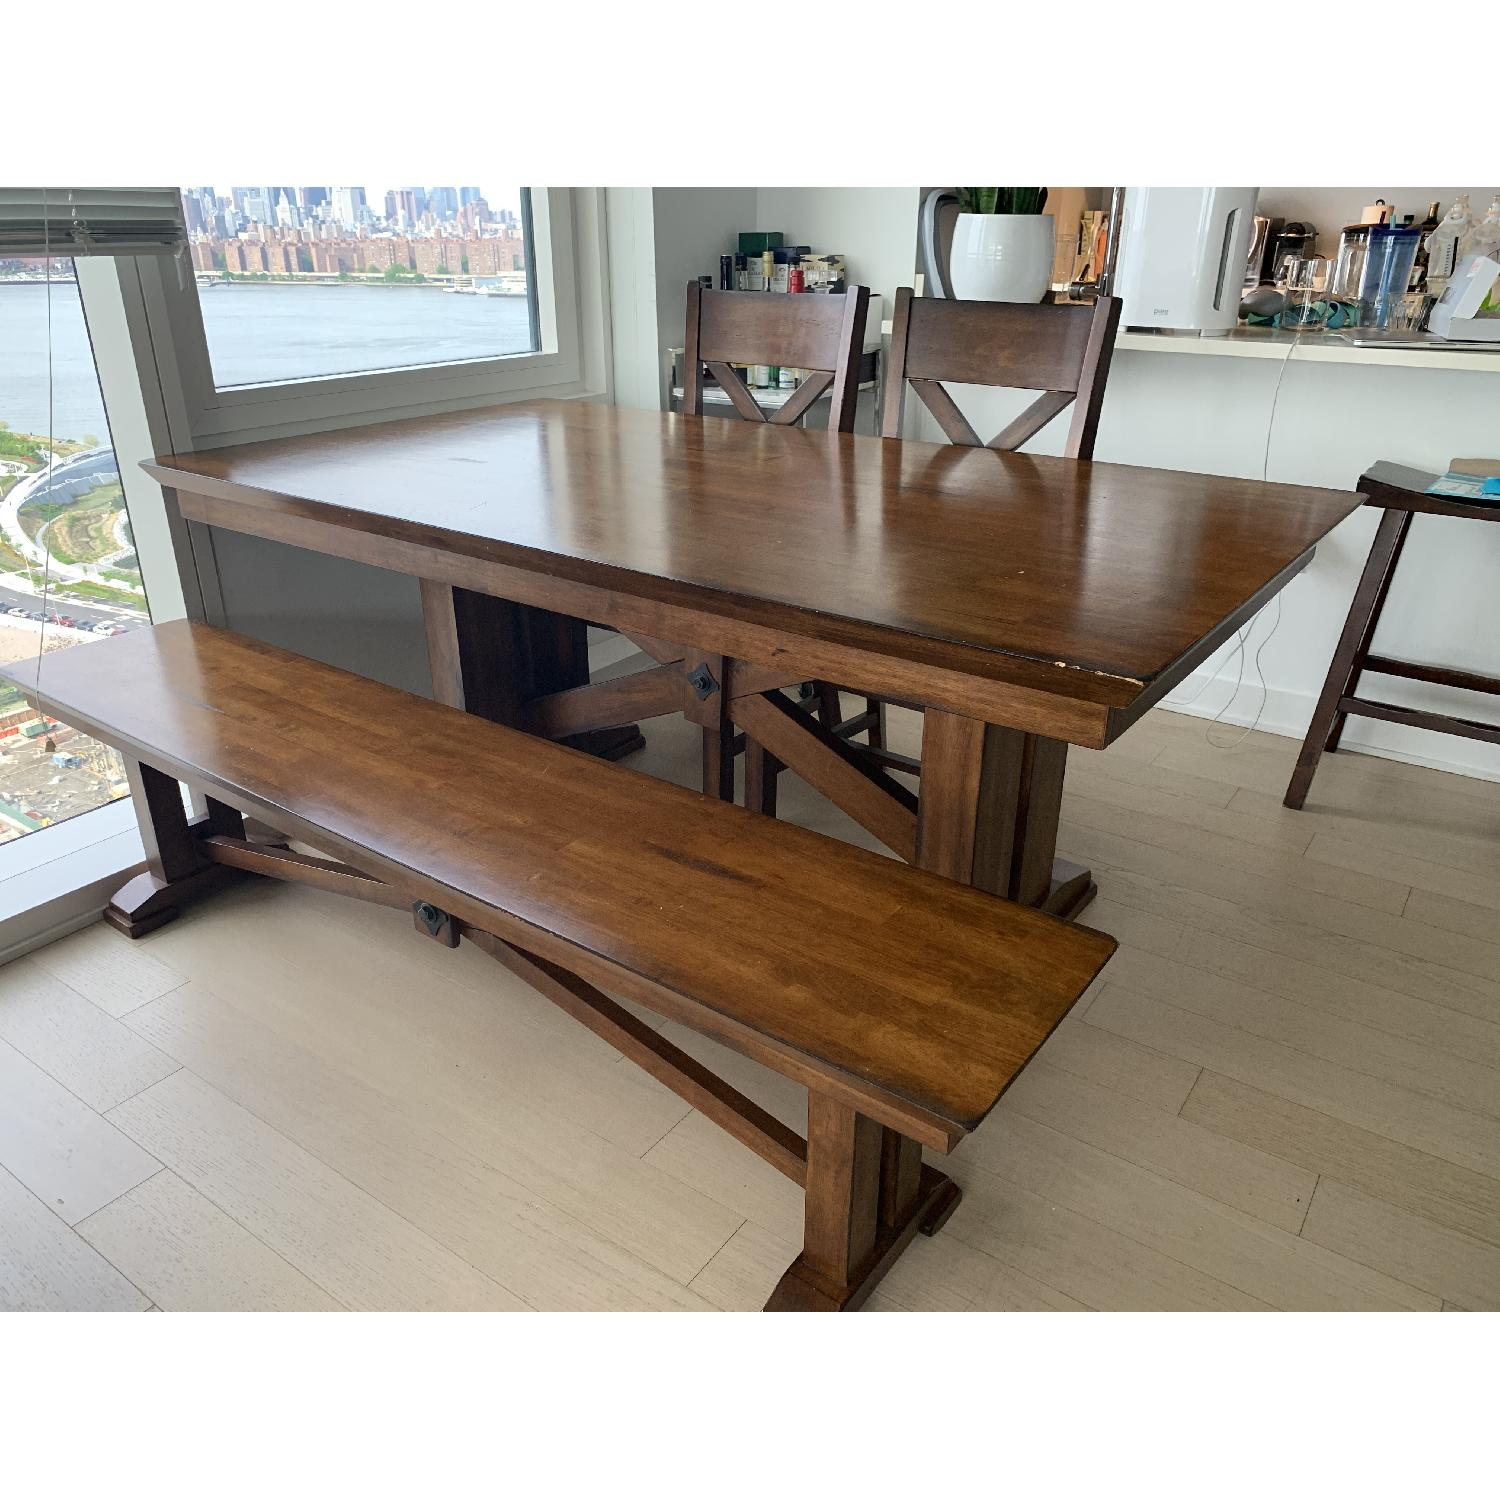 World Market Solid Wood Dining Table w/ 1 Bench + 2 Chairs - image-1